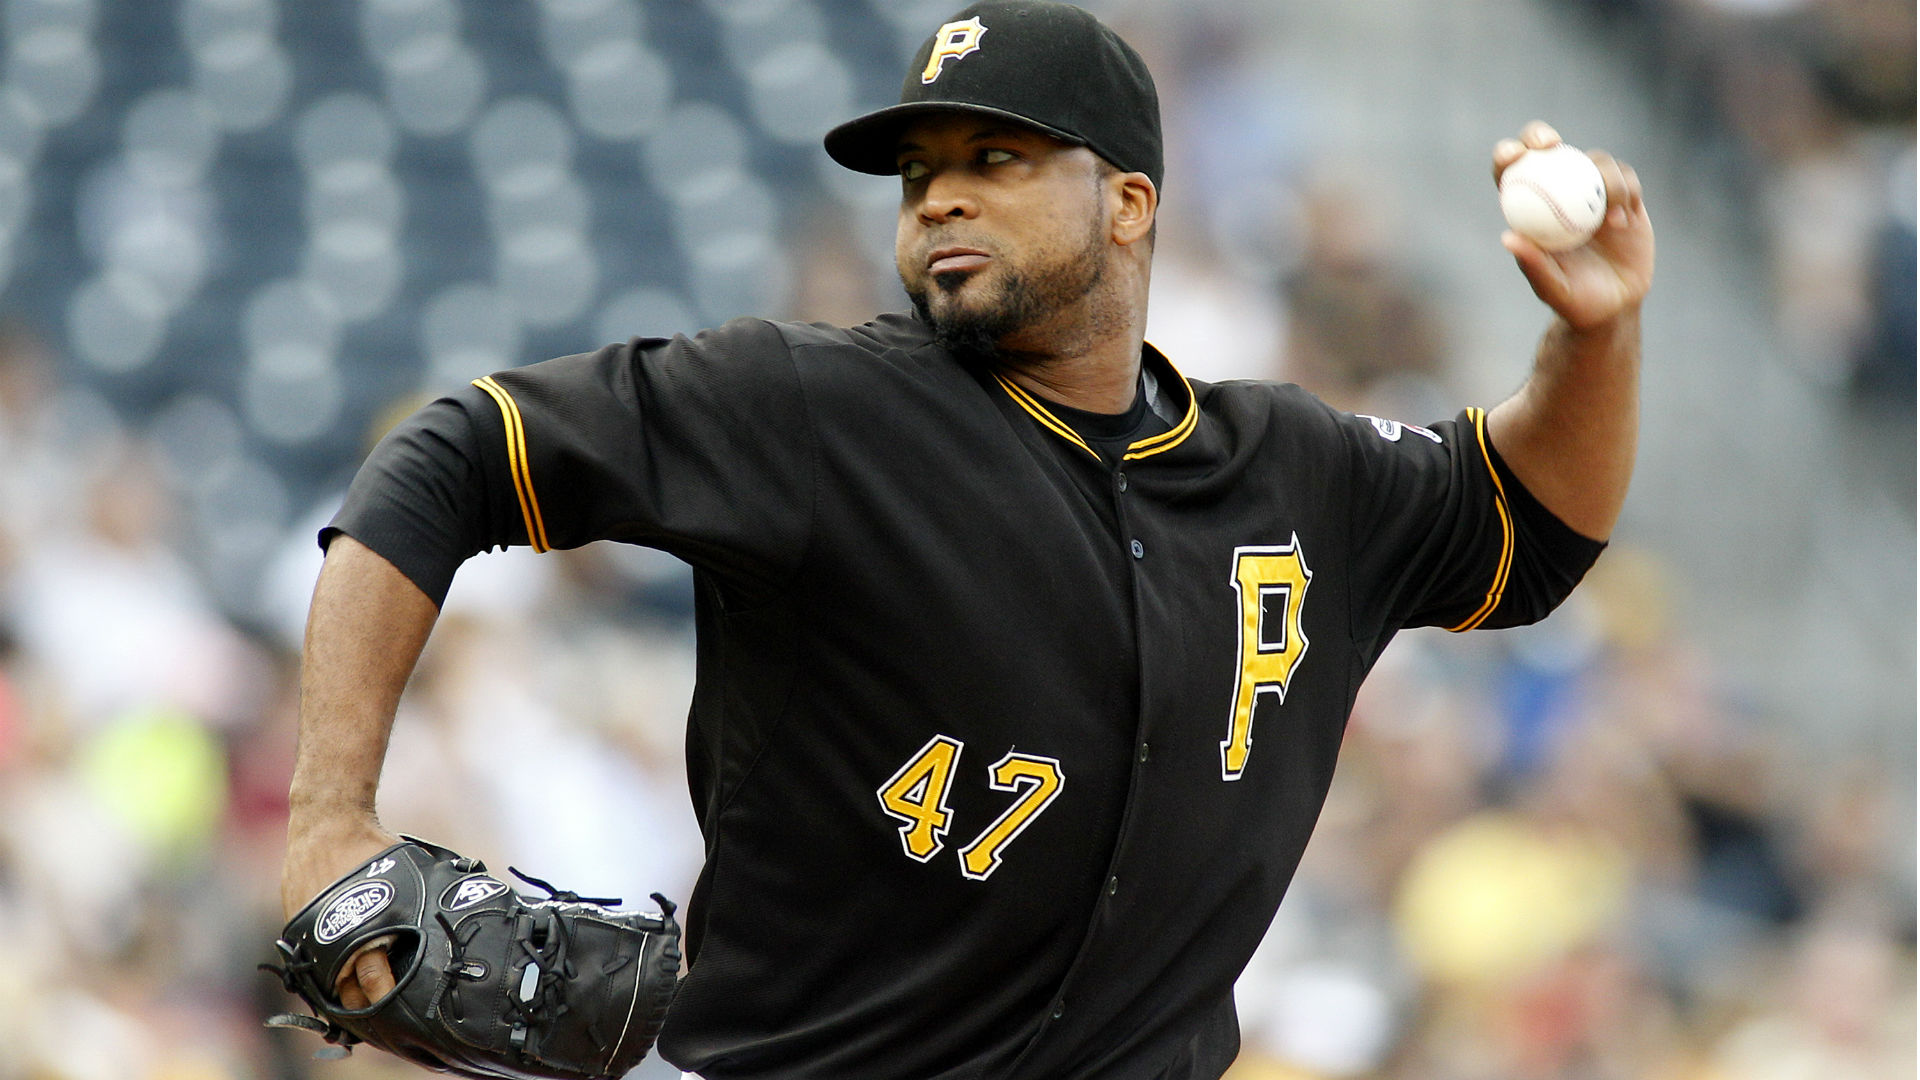 liriano-francisco-061515-usnews-getty-ftr